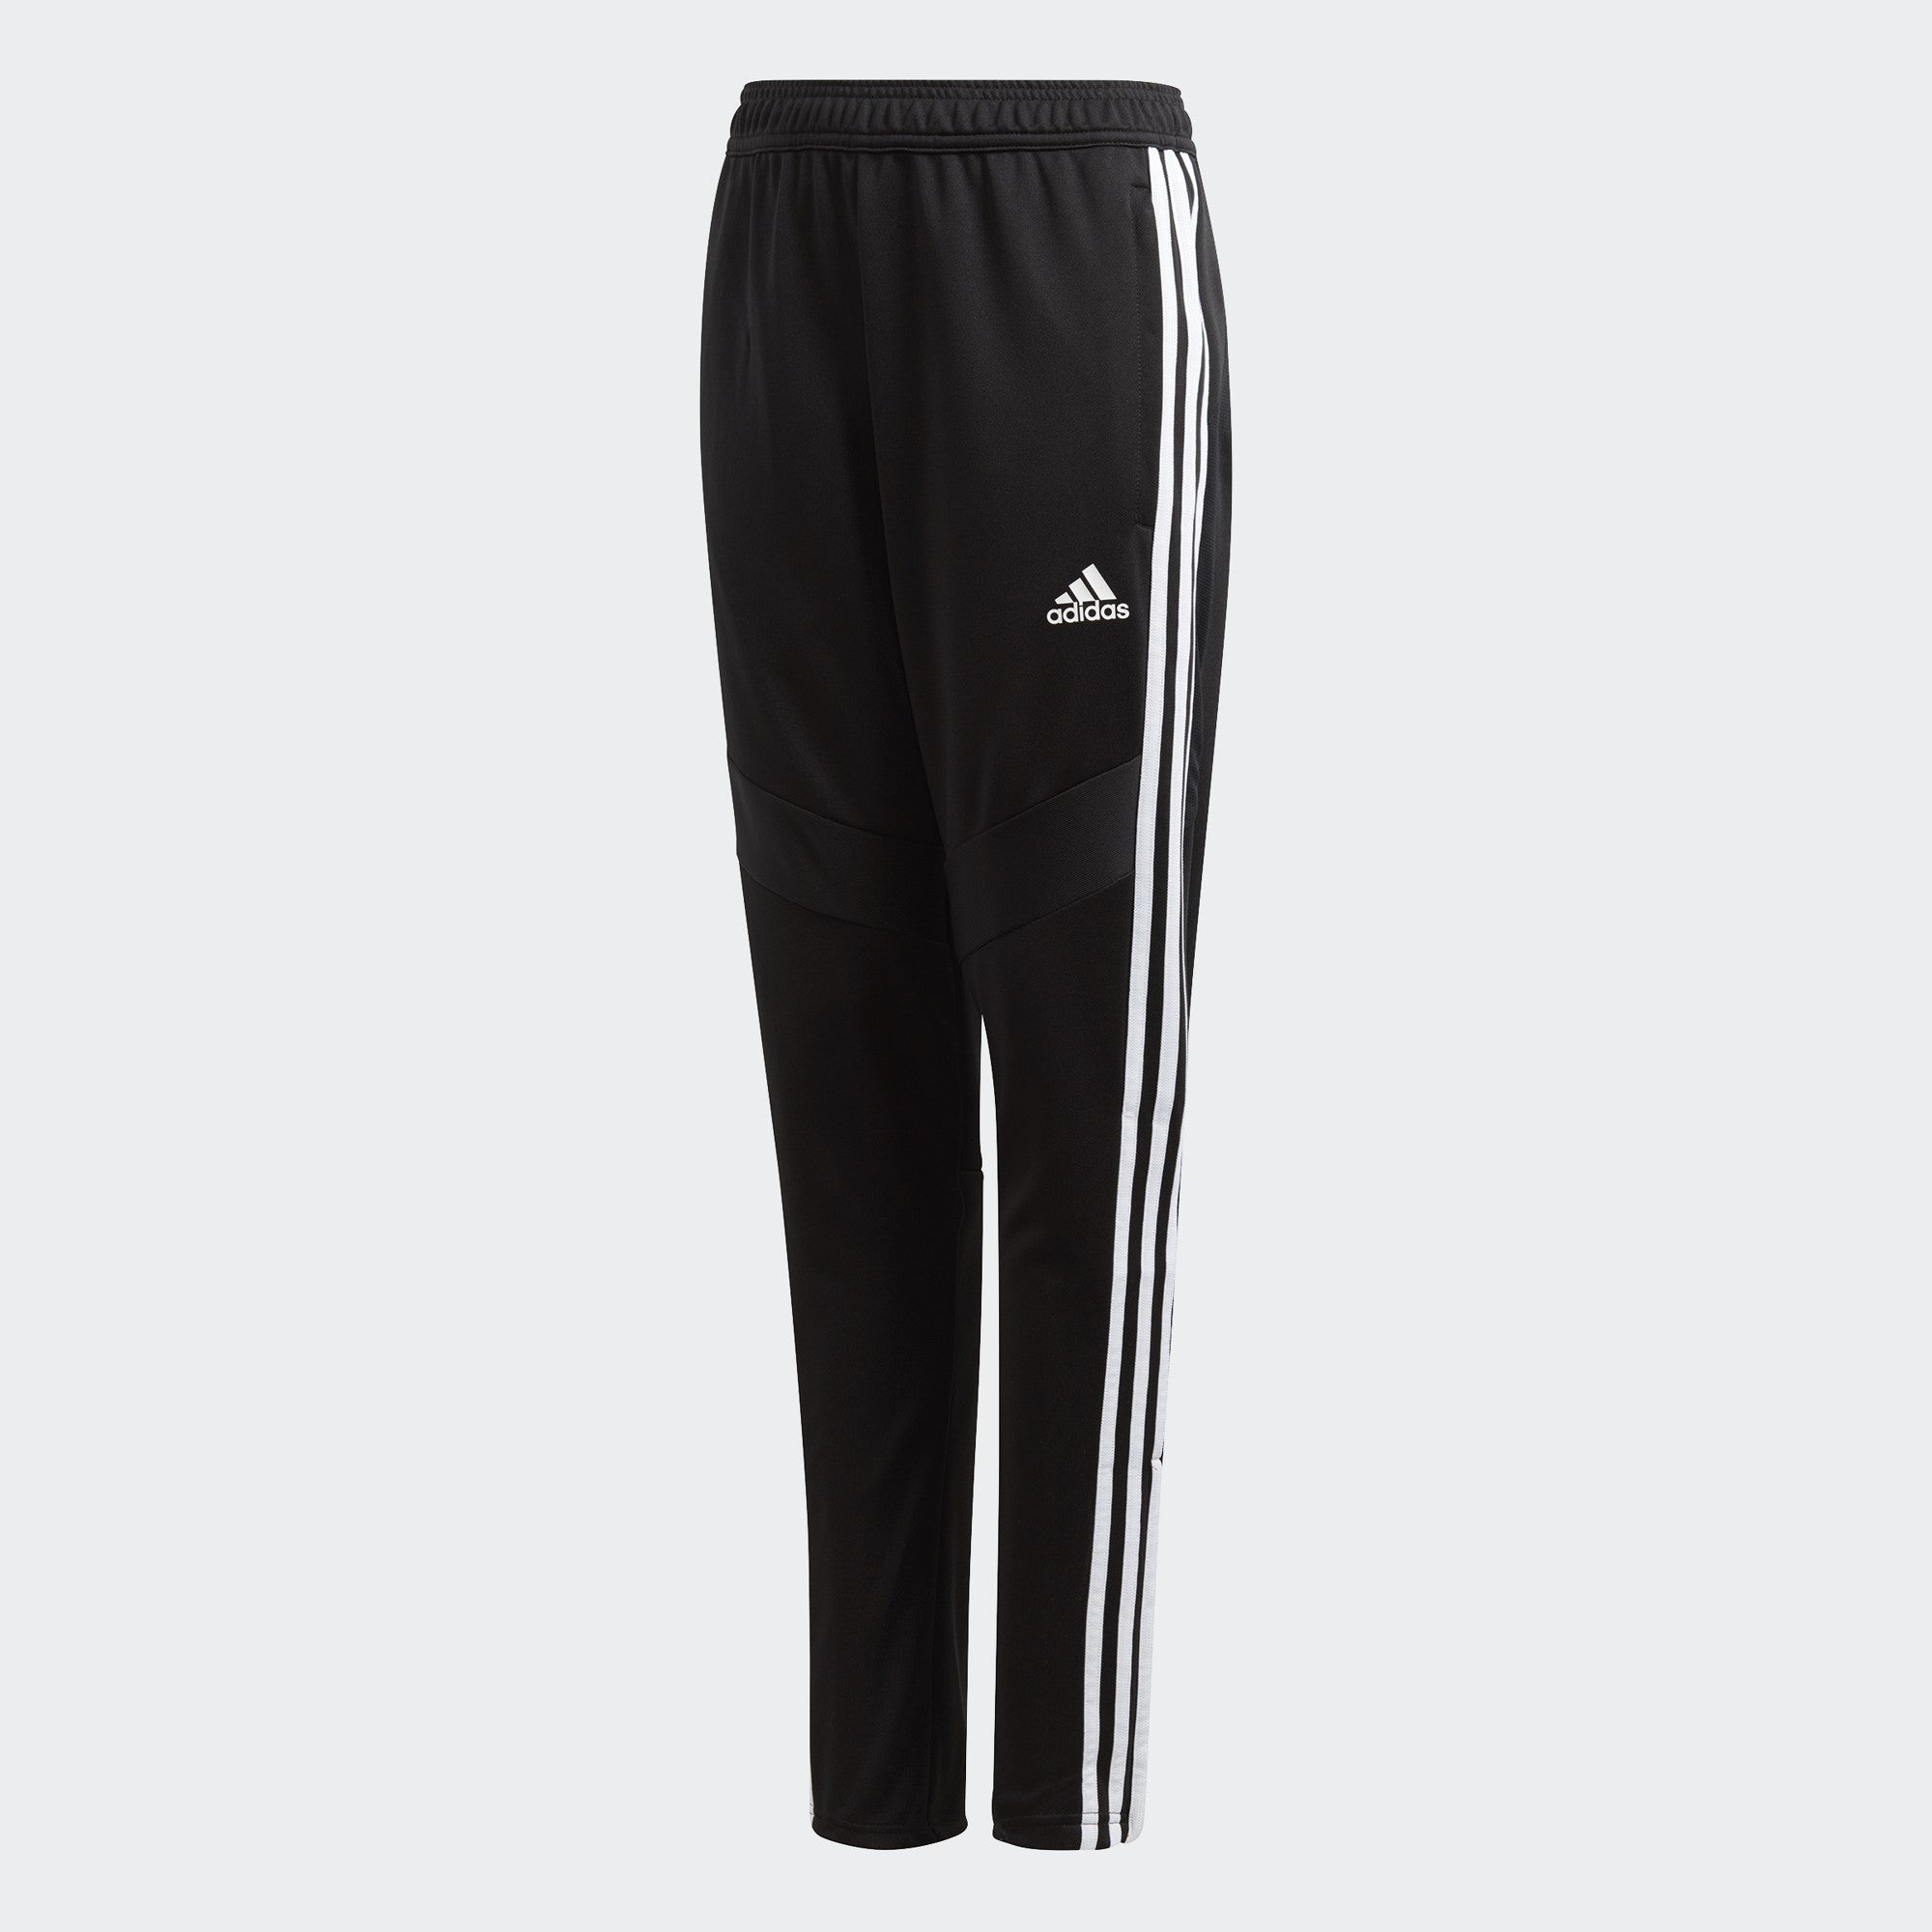 Youth Tiro19 Training Pants - Black/White